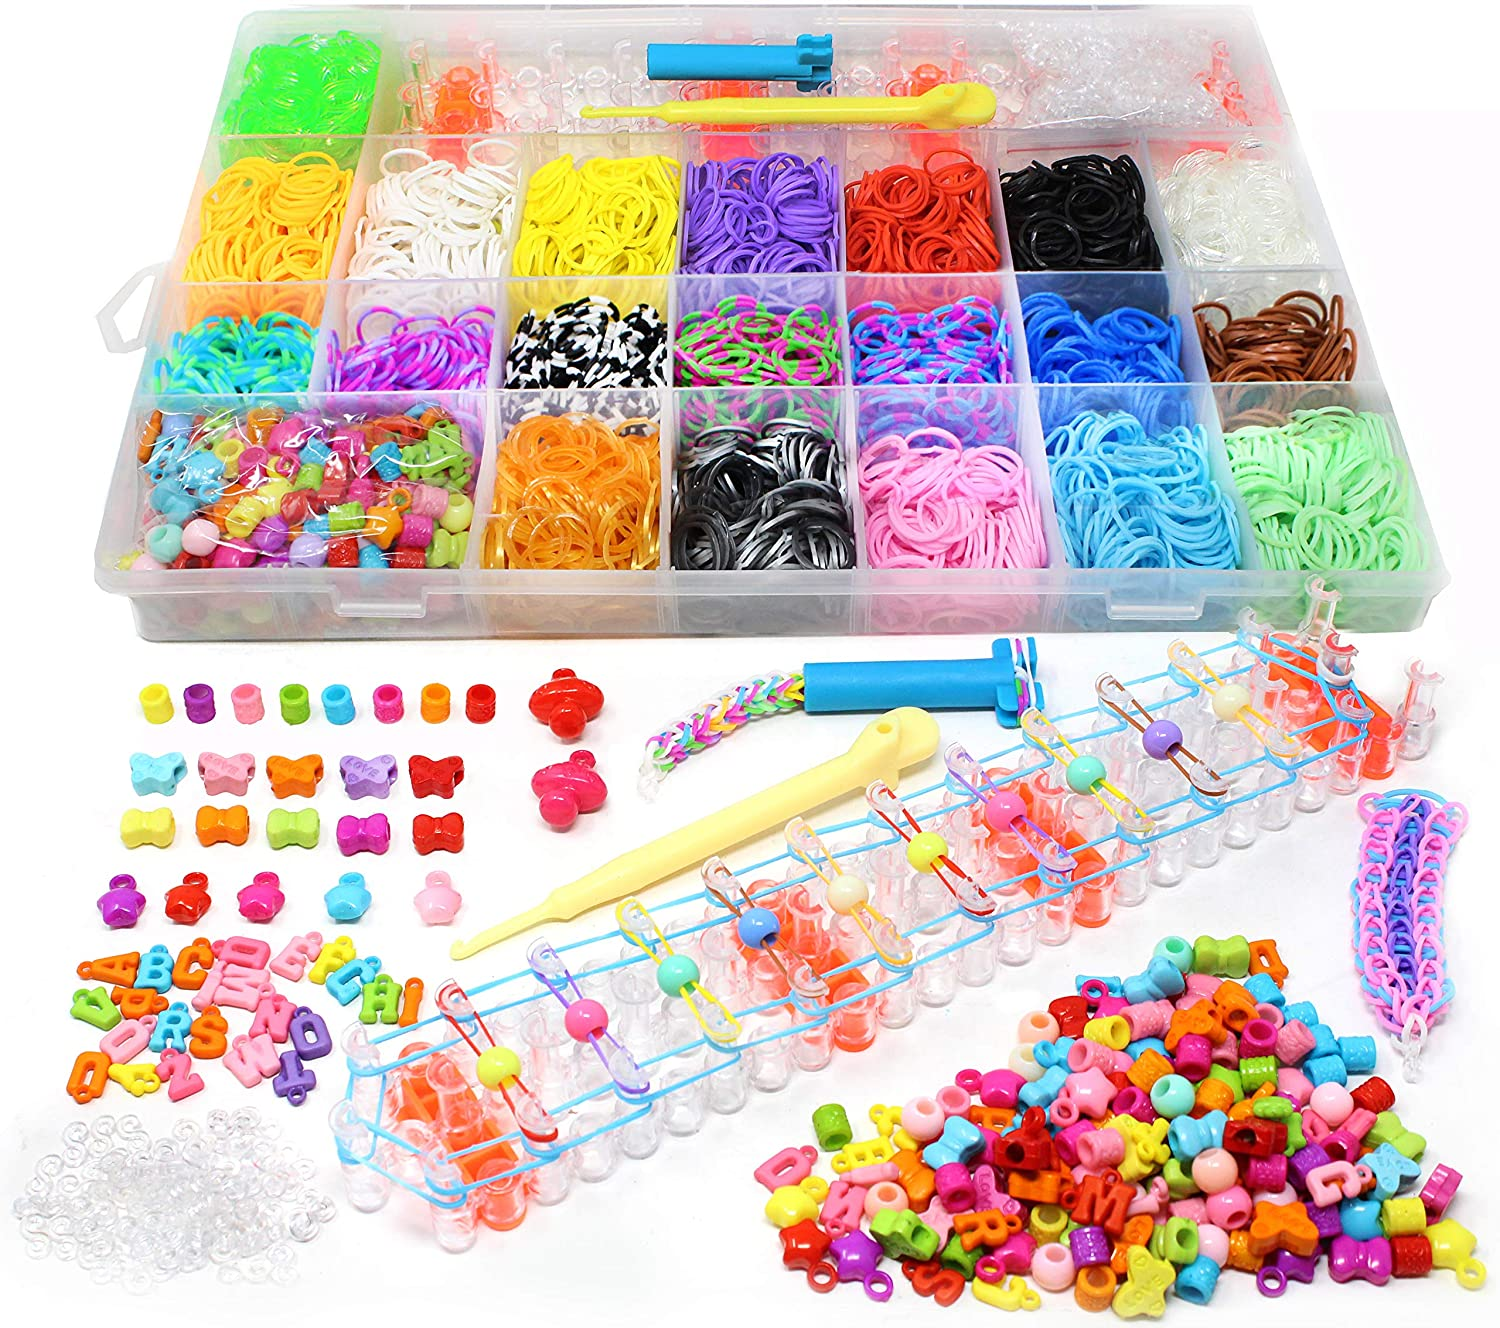 5800+ DIY Rubber Bead Looms Band Bracelet Maker Kit with Mega Rainbow Color Refill Bands, Beads and S Clips, Board and Organizer for Christmas Stocking Stuffers, Holiday Xmas Gift Party Favor Supplies Joyin Inc